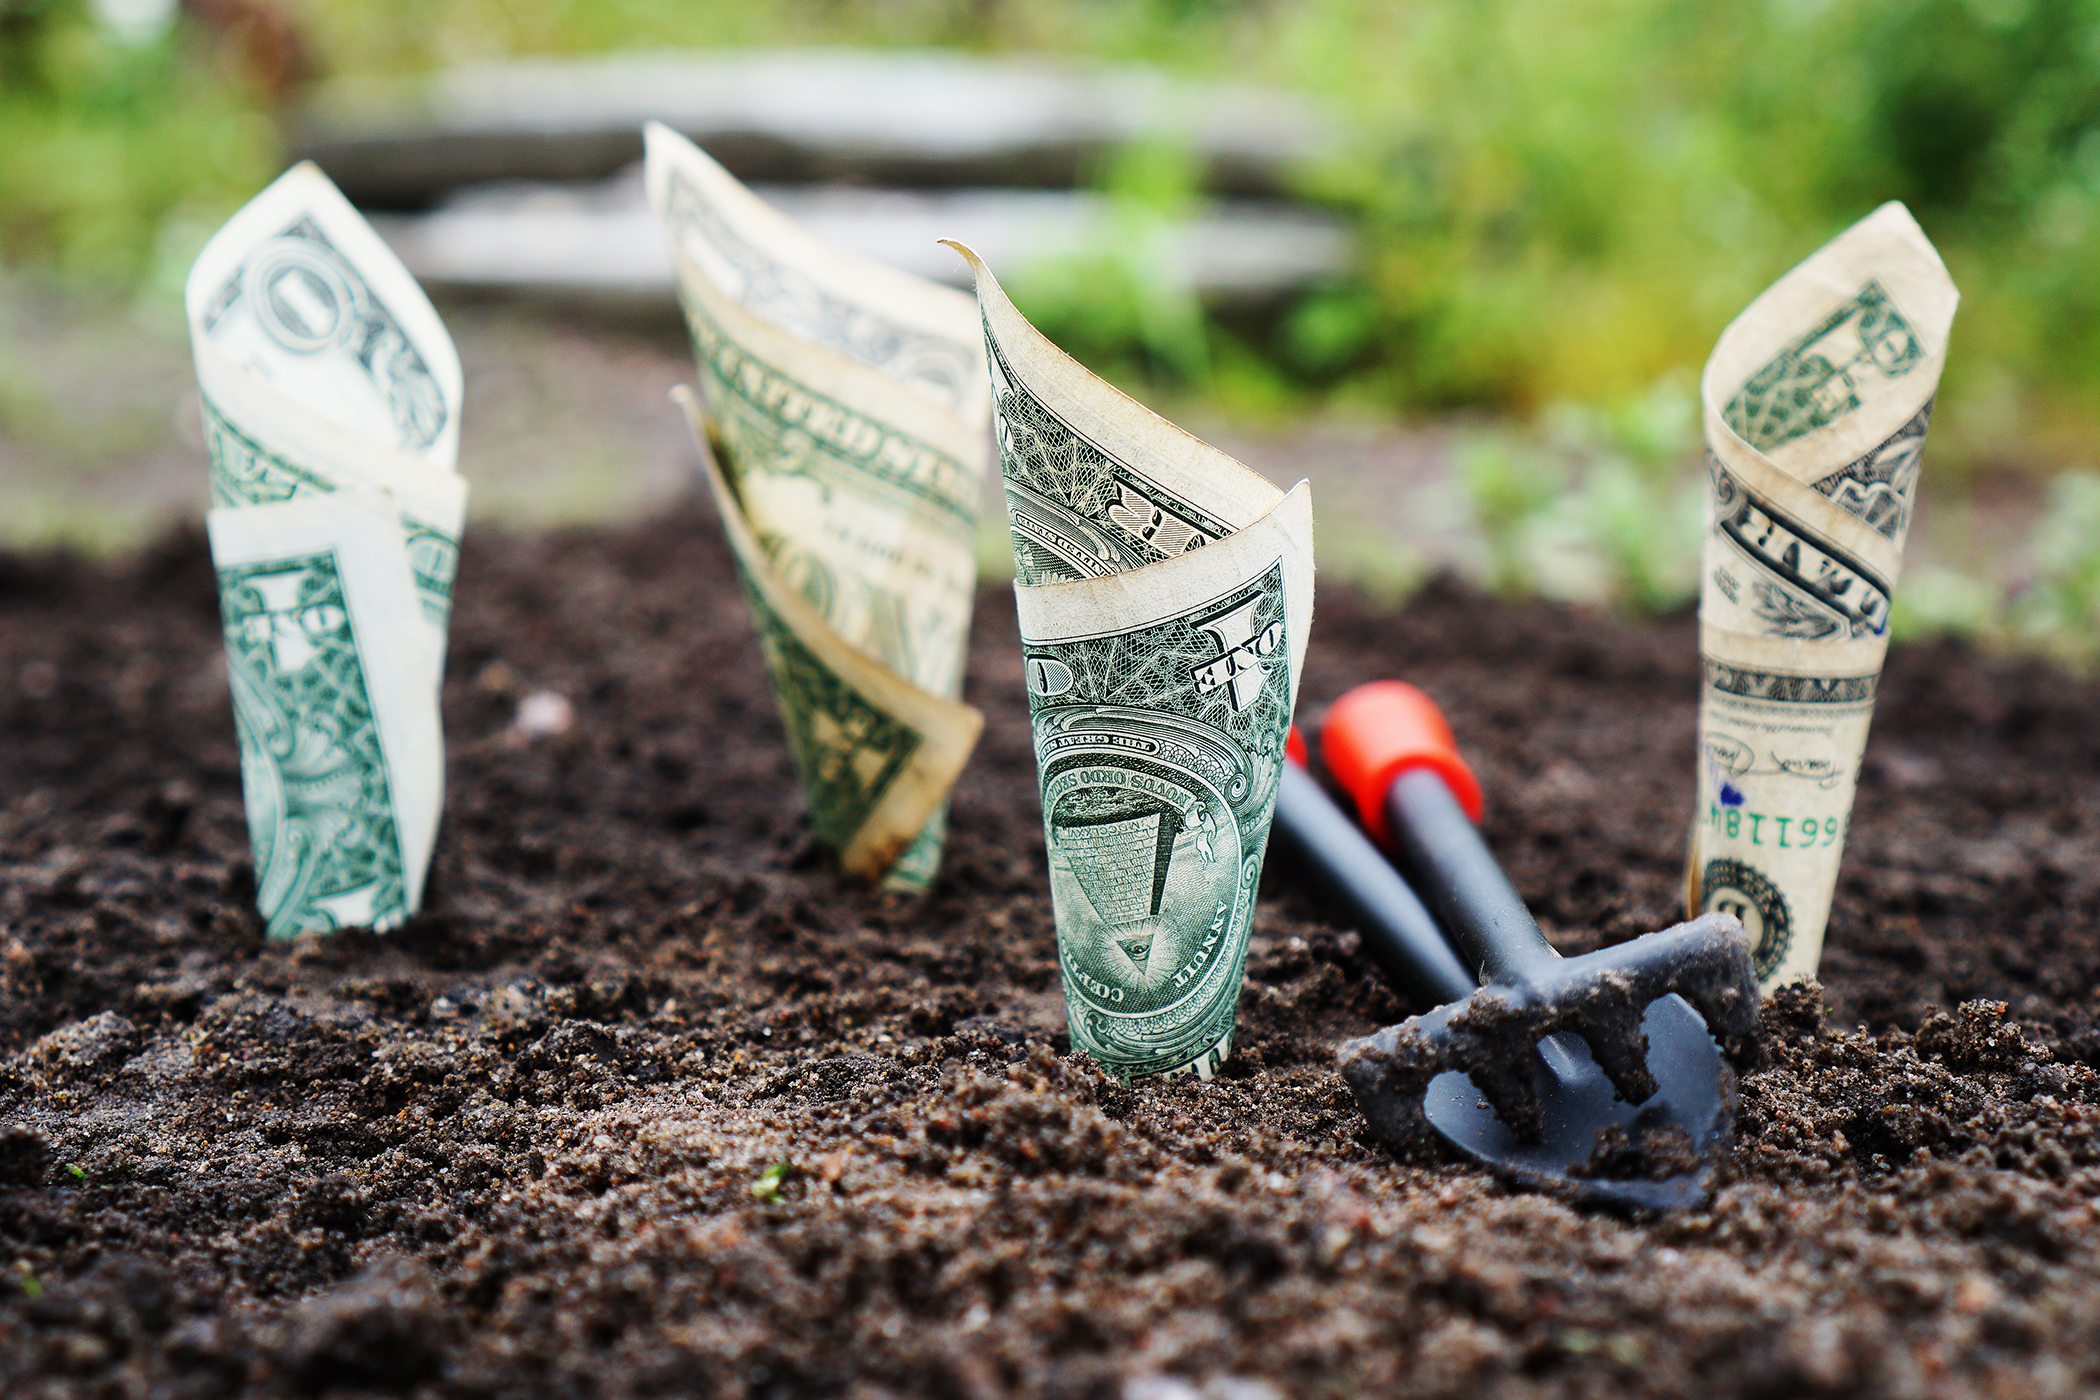 Dollars planted in dirt image